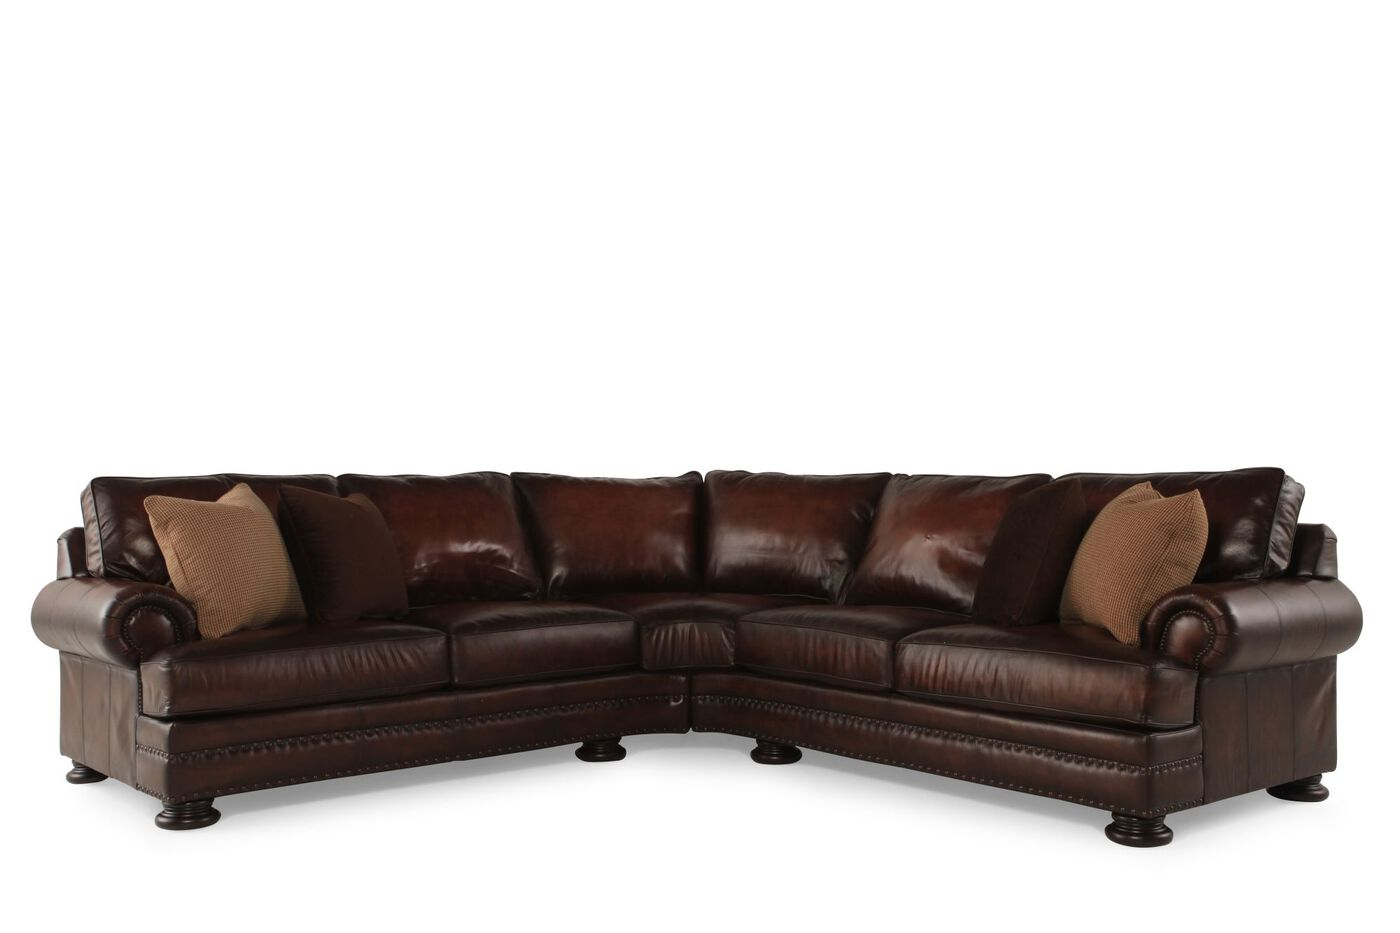 Bernhardt Foster Leather Sectional : Mathis Brothers Furniture